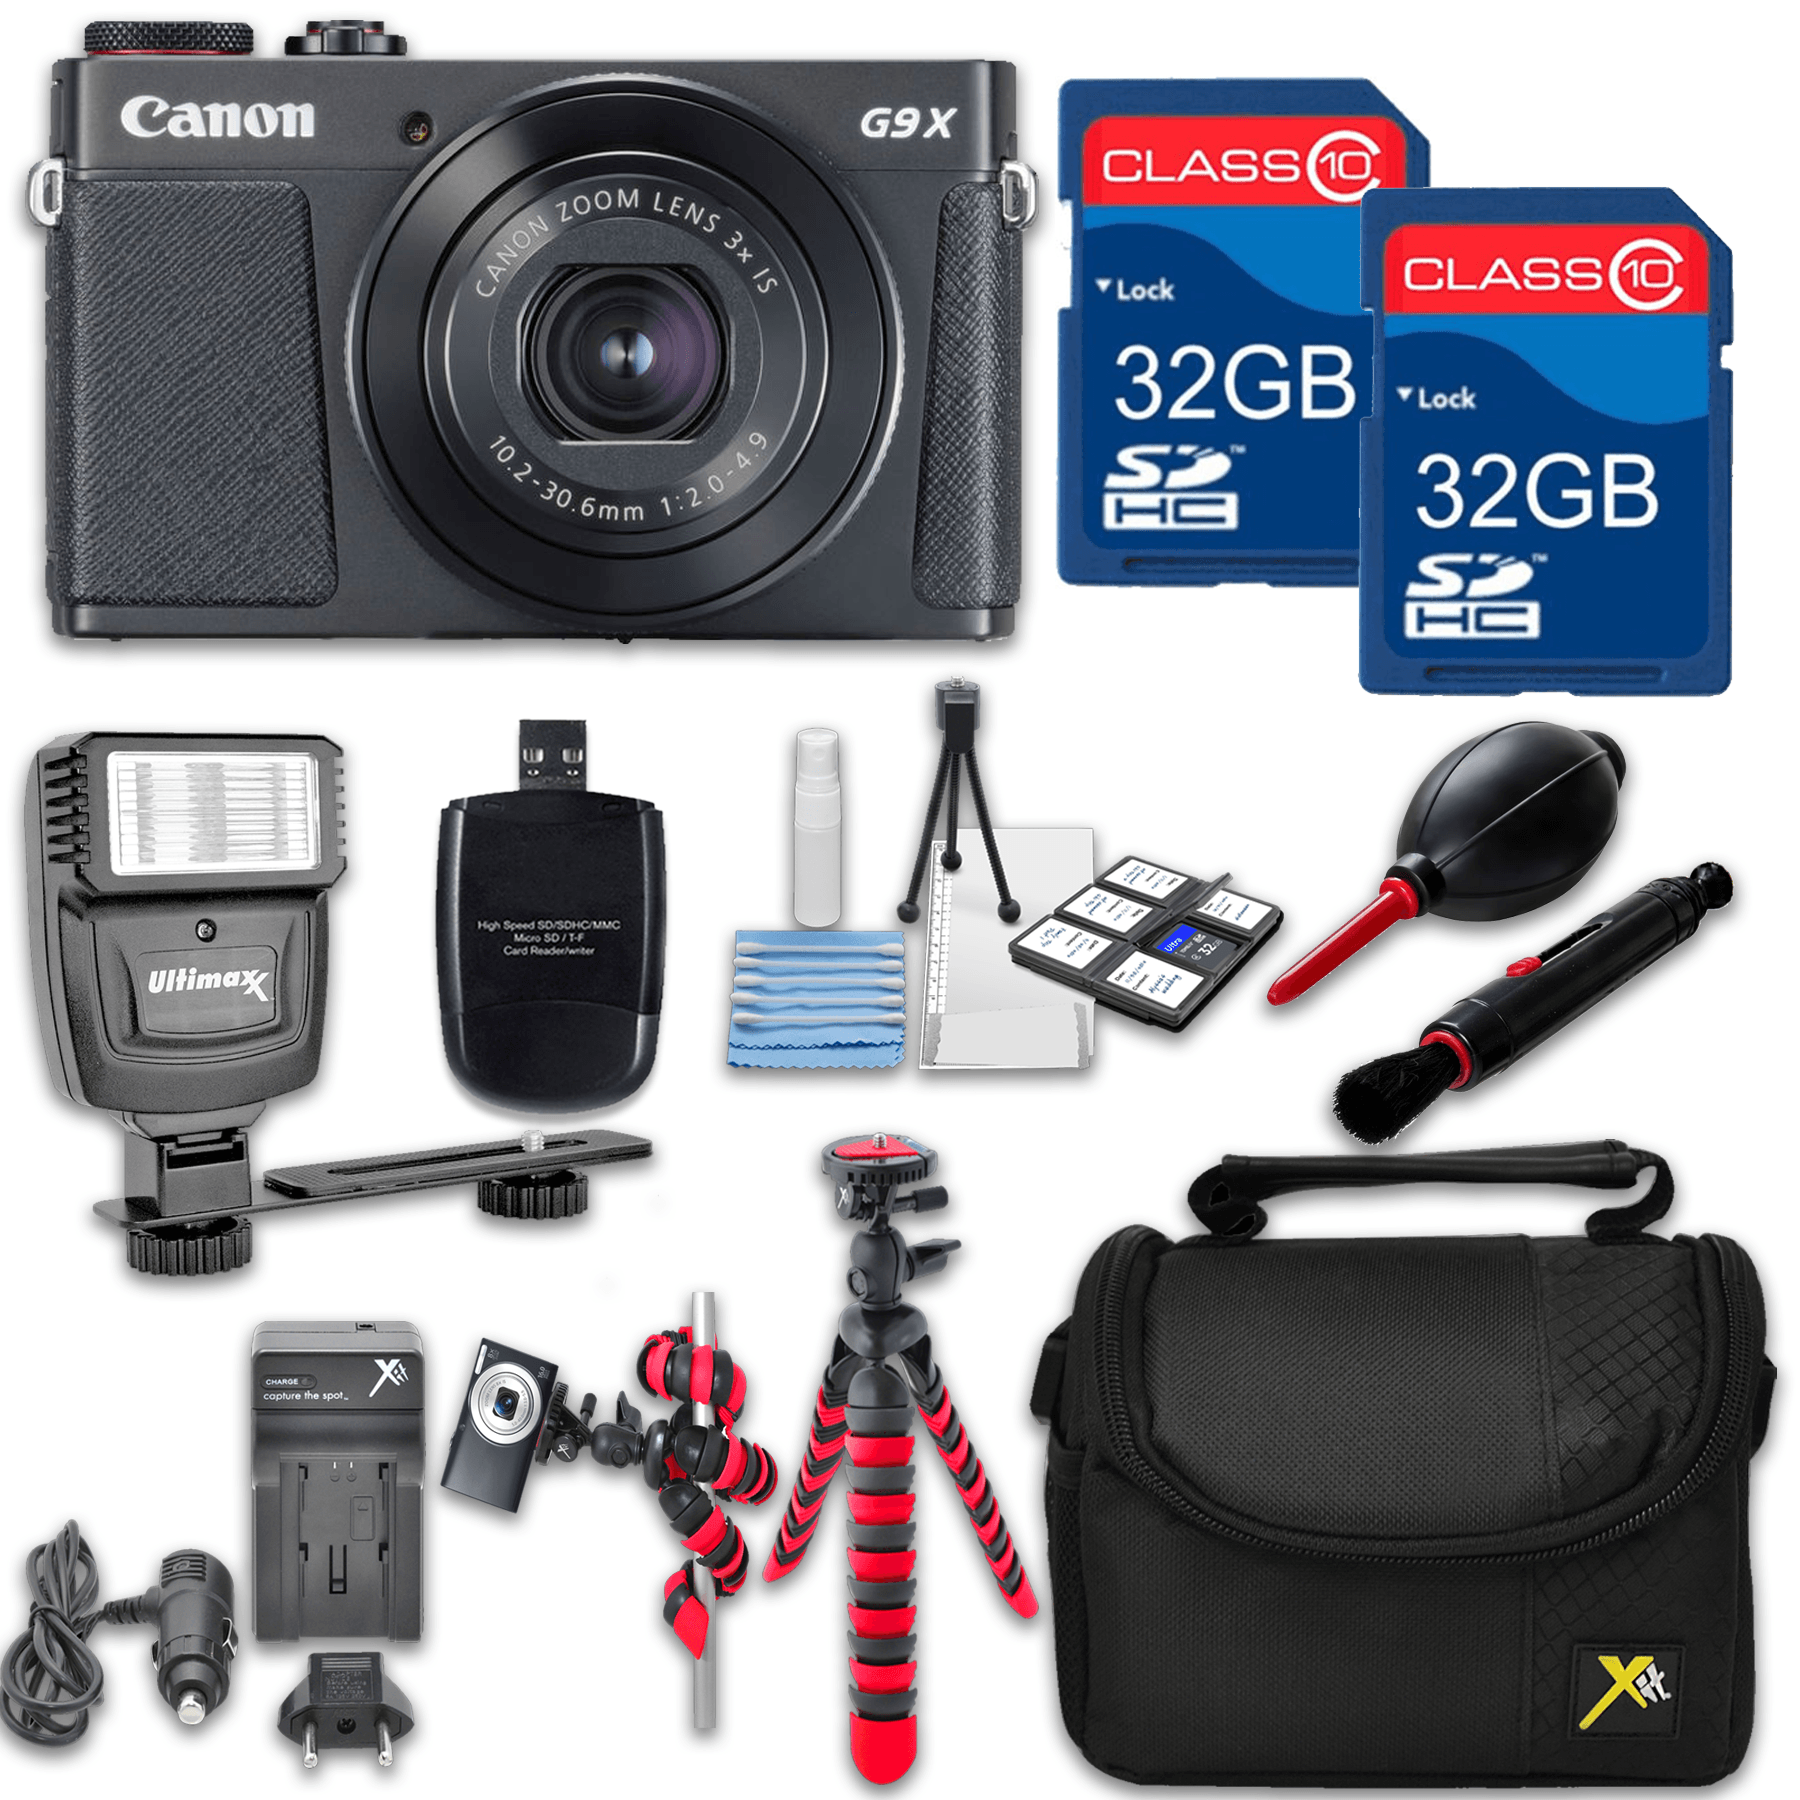 Canon Powershot G9 X Mark II (Black) HS Point and Shoot Digital Camera, W/ Case + 64GB Memory + Flash + Tripod + Case + Cleaning Kit + More